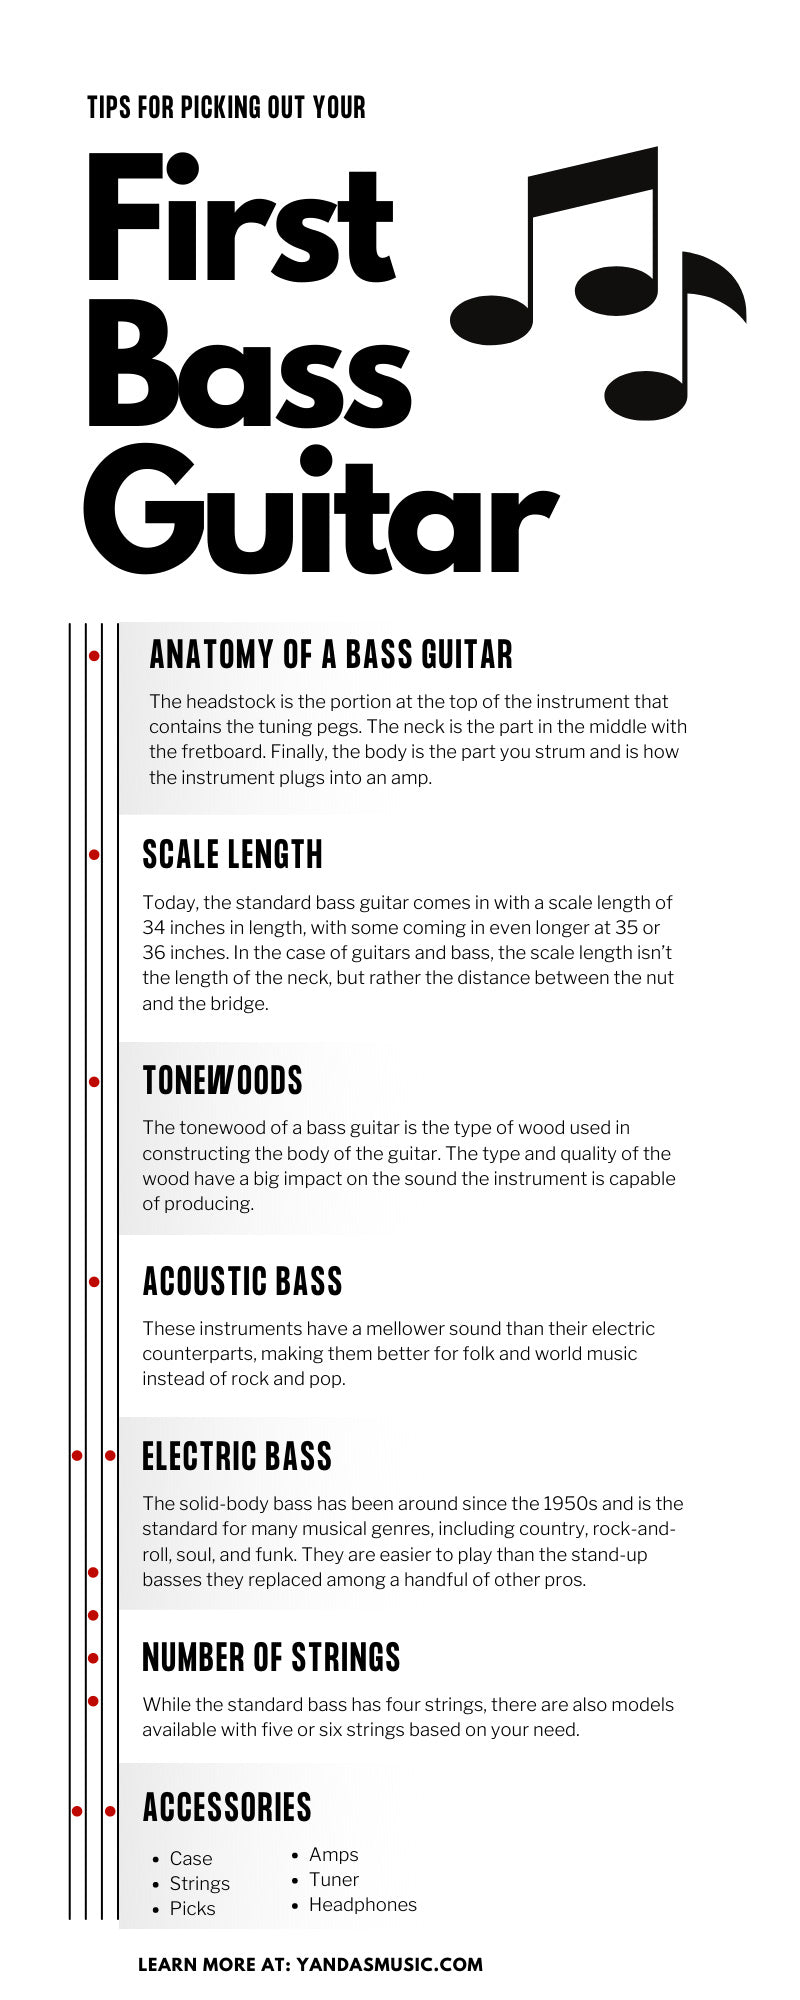 Tips for Picking Out Your First Bass Guitar